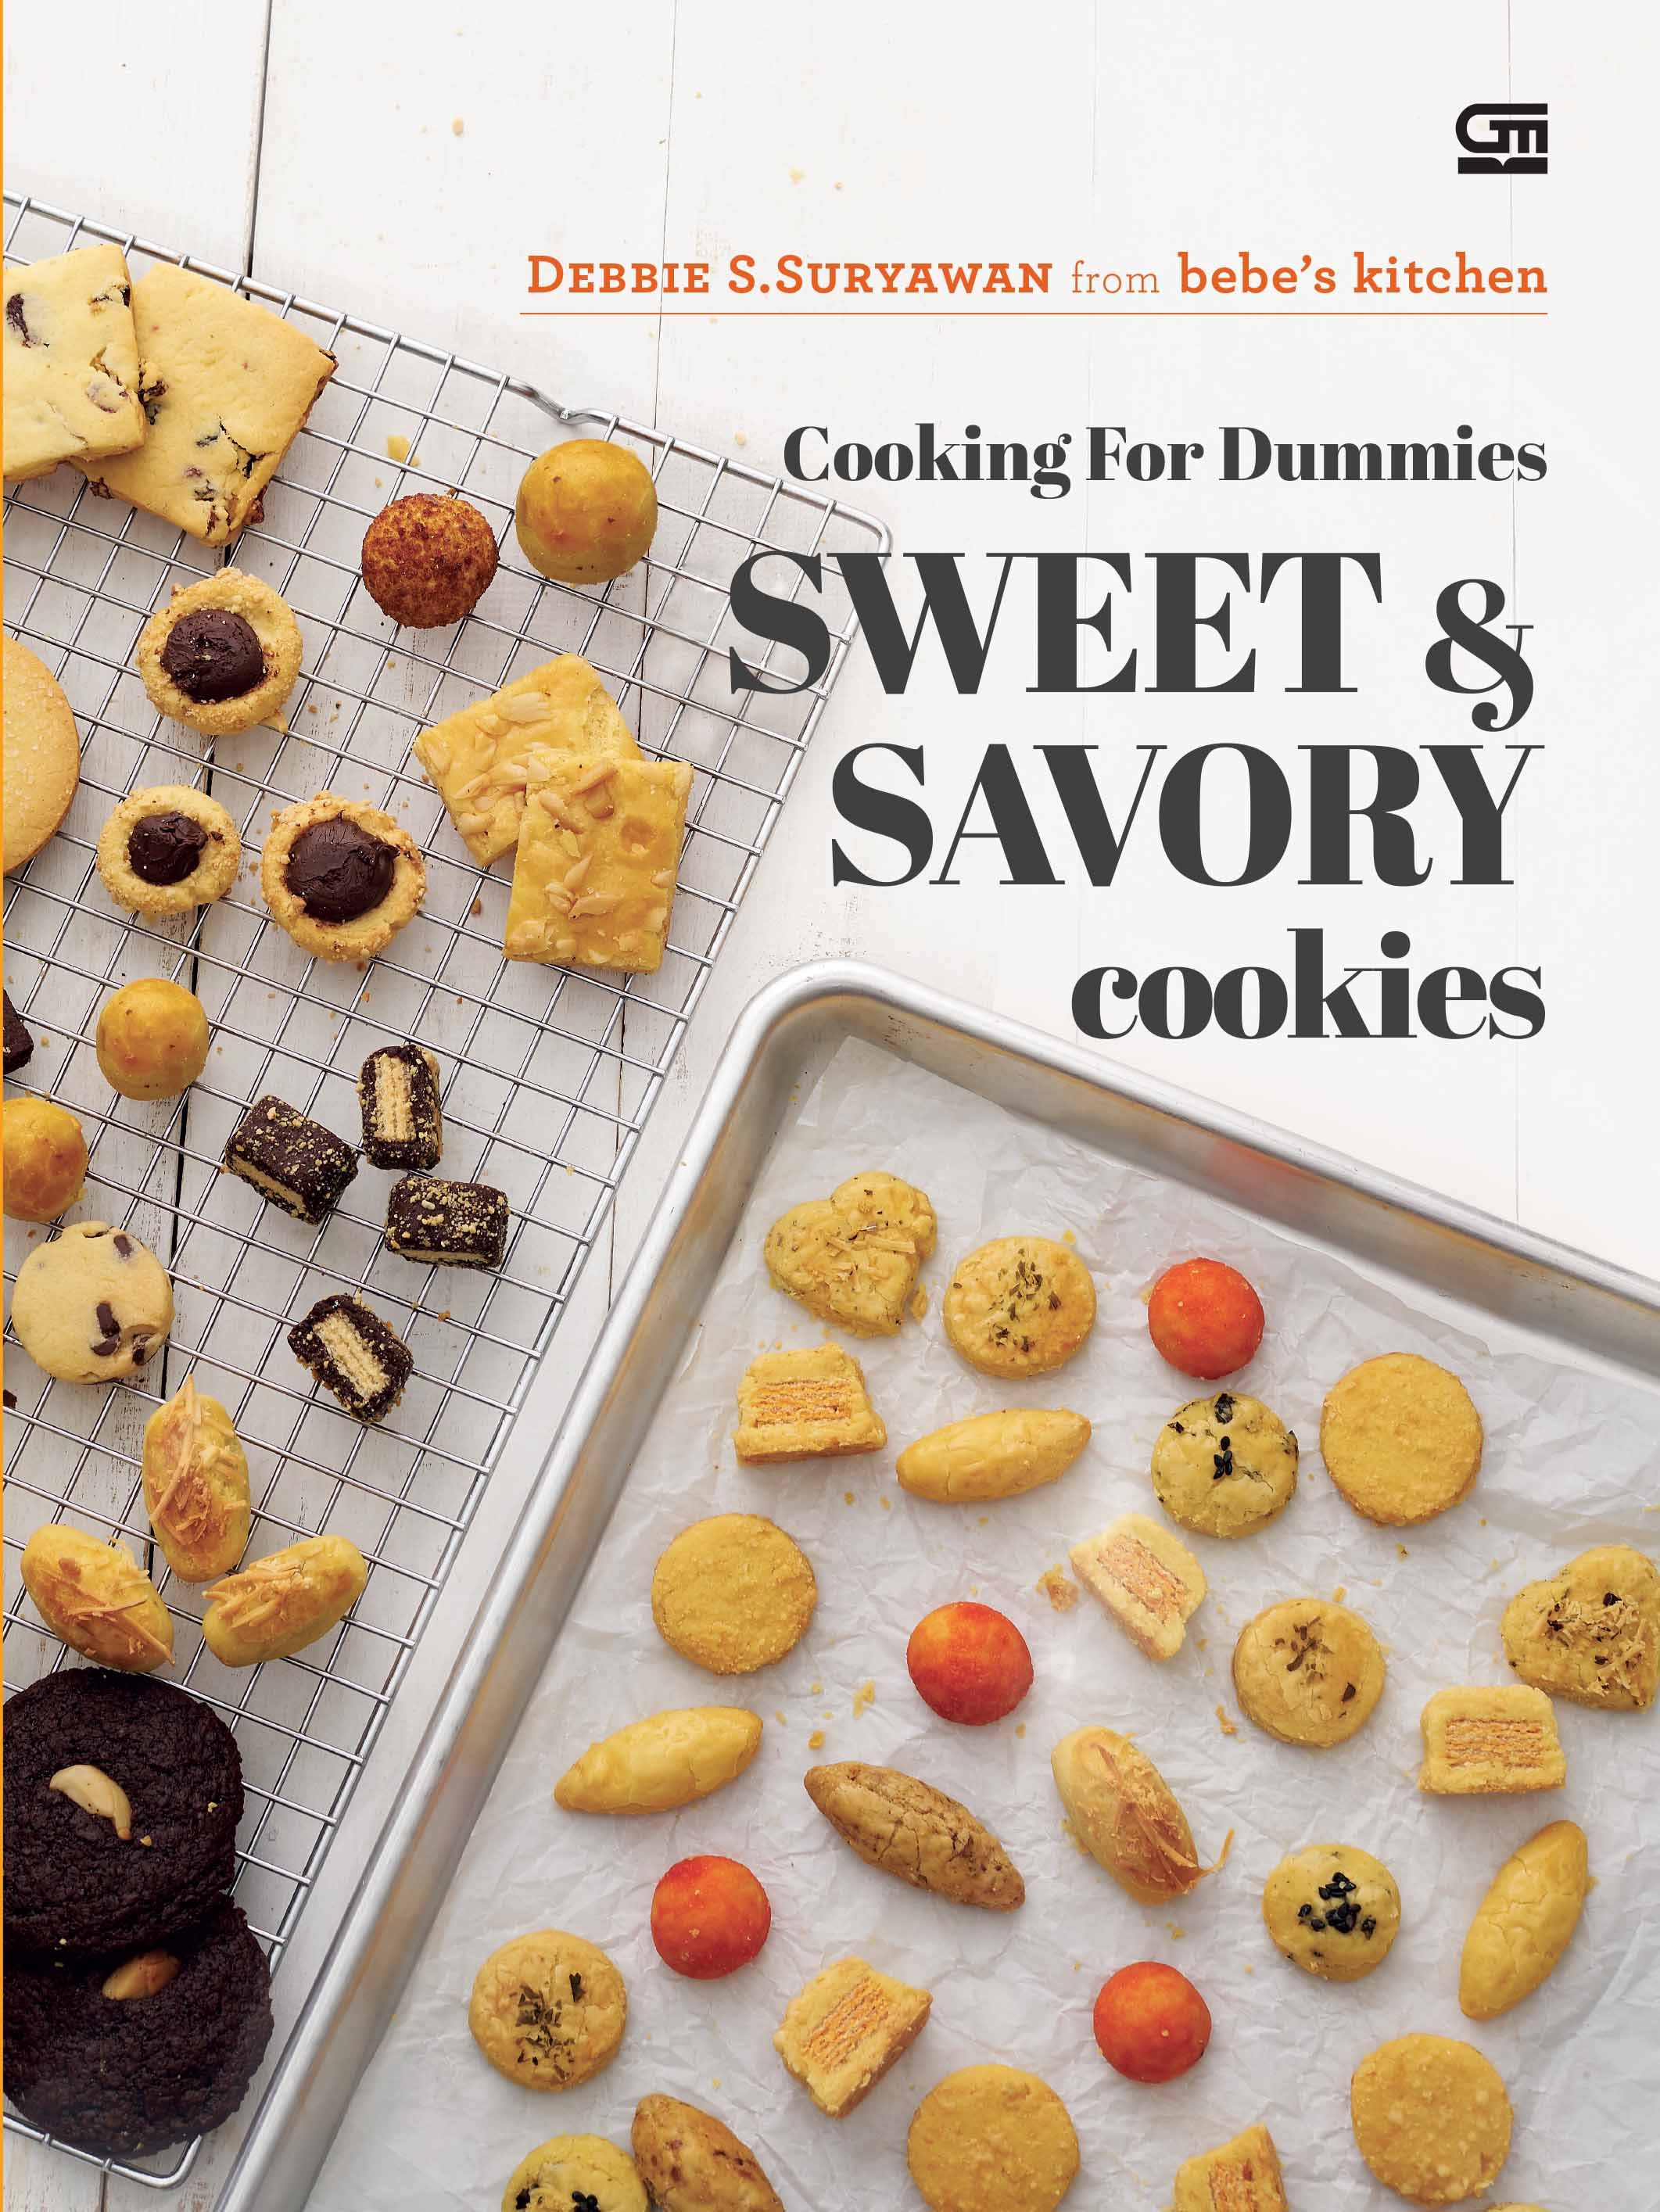 Cooking Baking for Dummies: Sweet & Savory Cookies